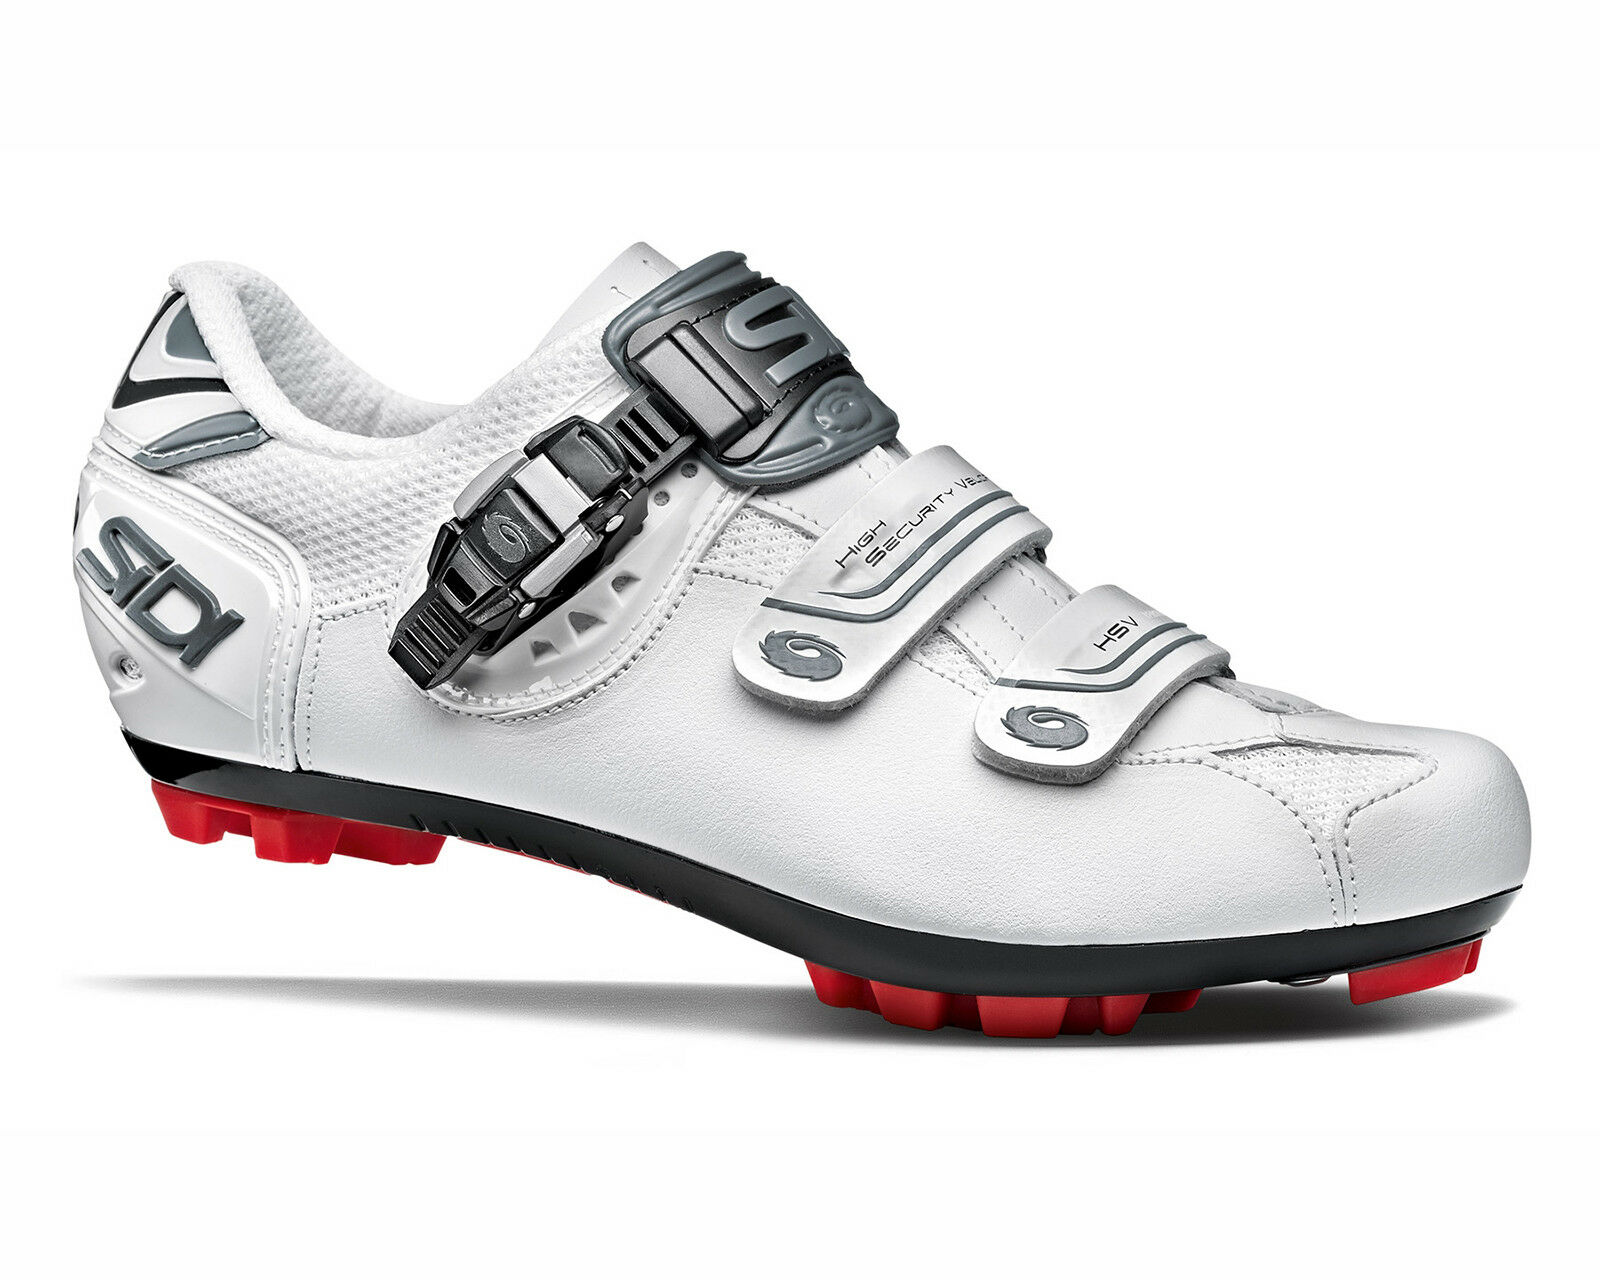 SIDI Eagle 7 SR MTB Cycling shoes  - Shadow White  your satisfaction is our target